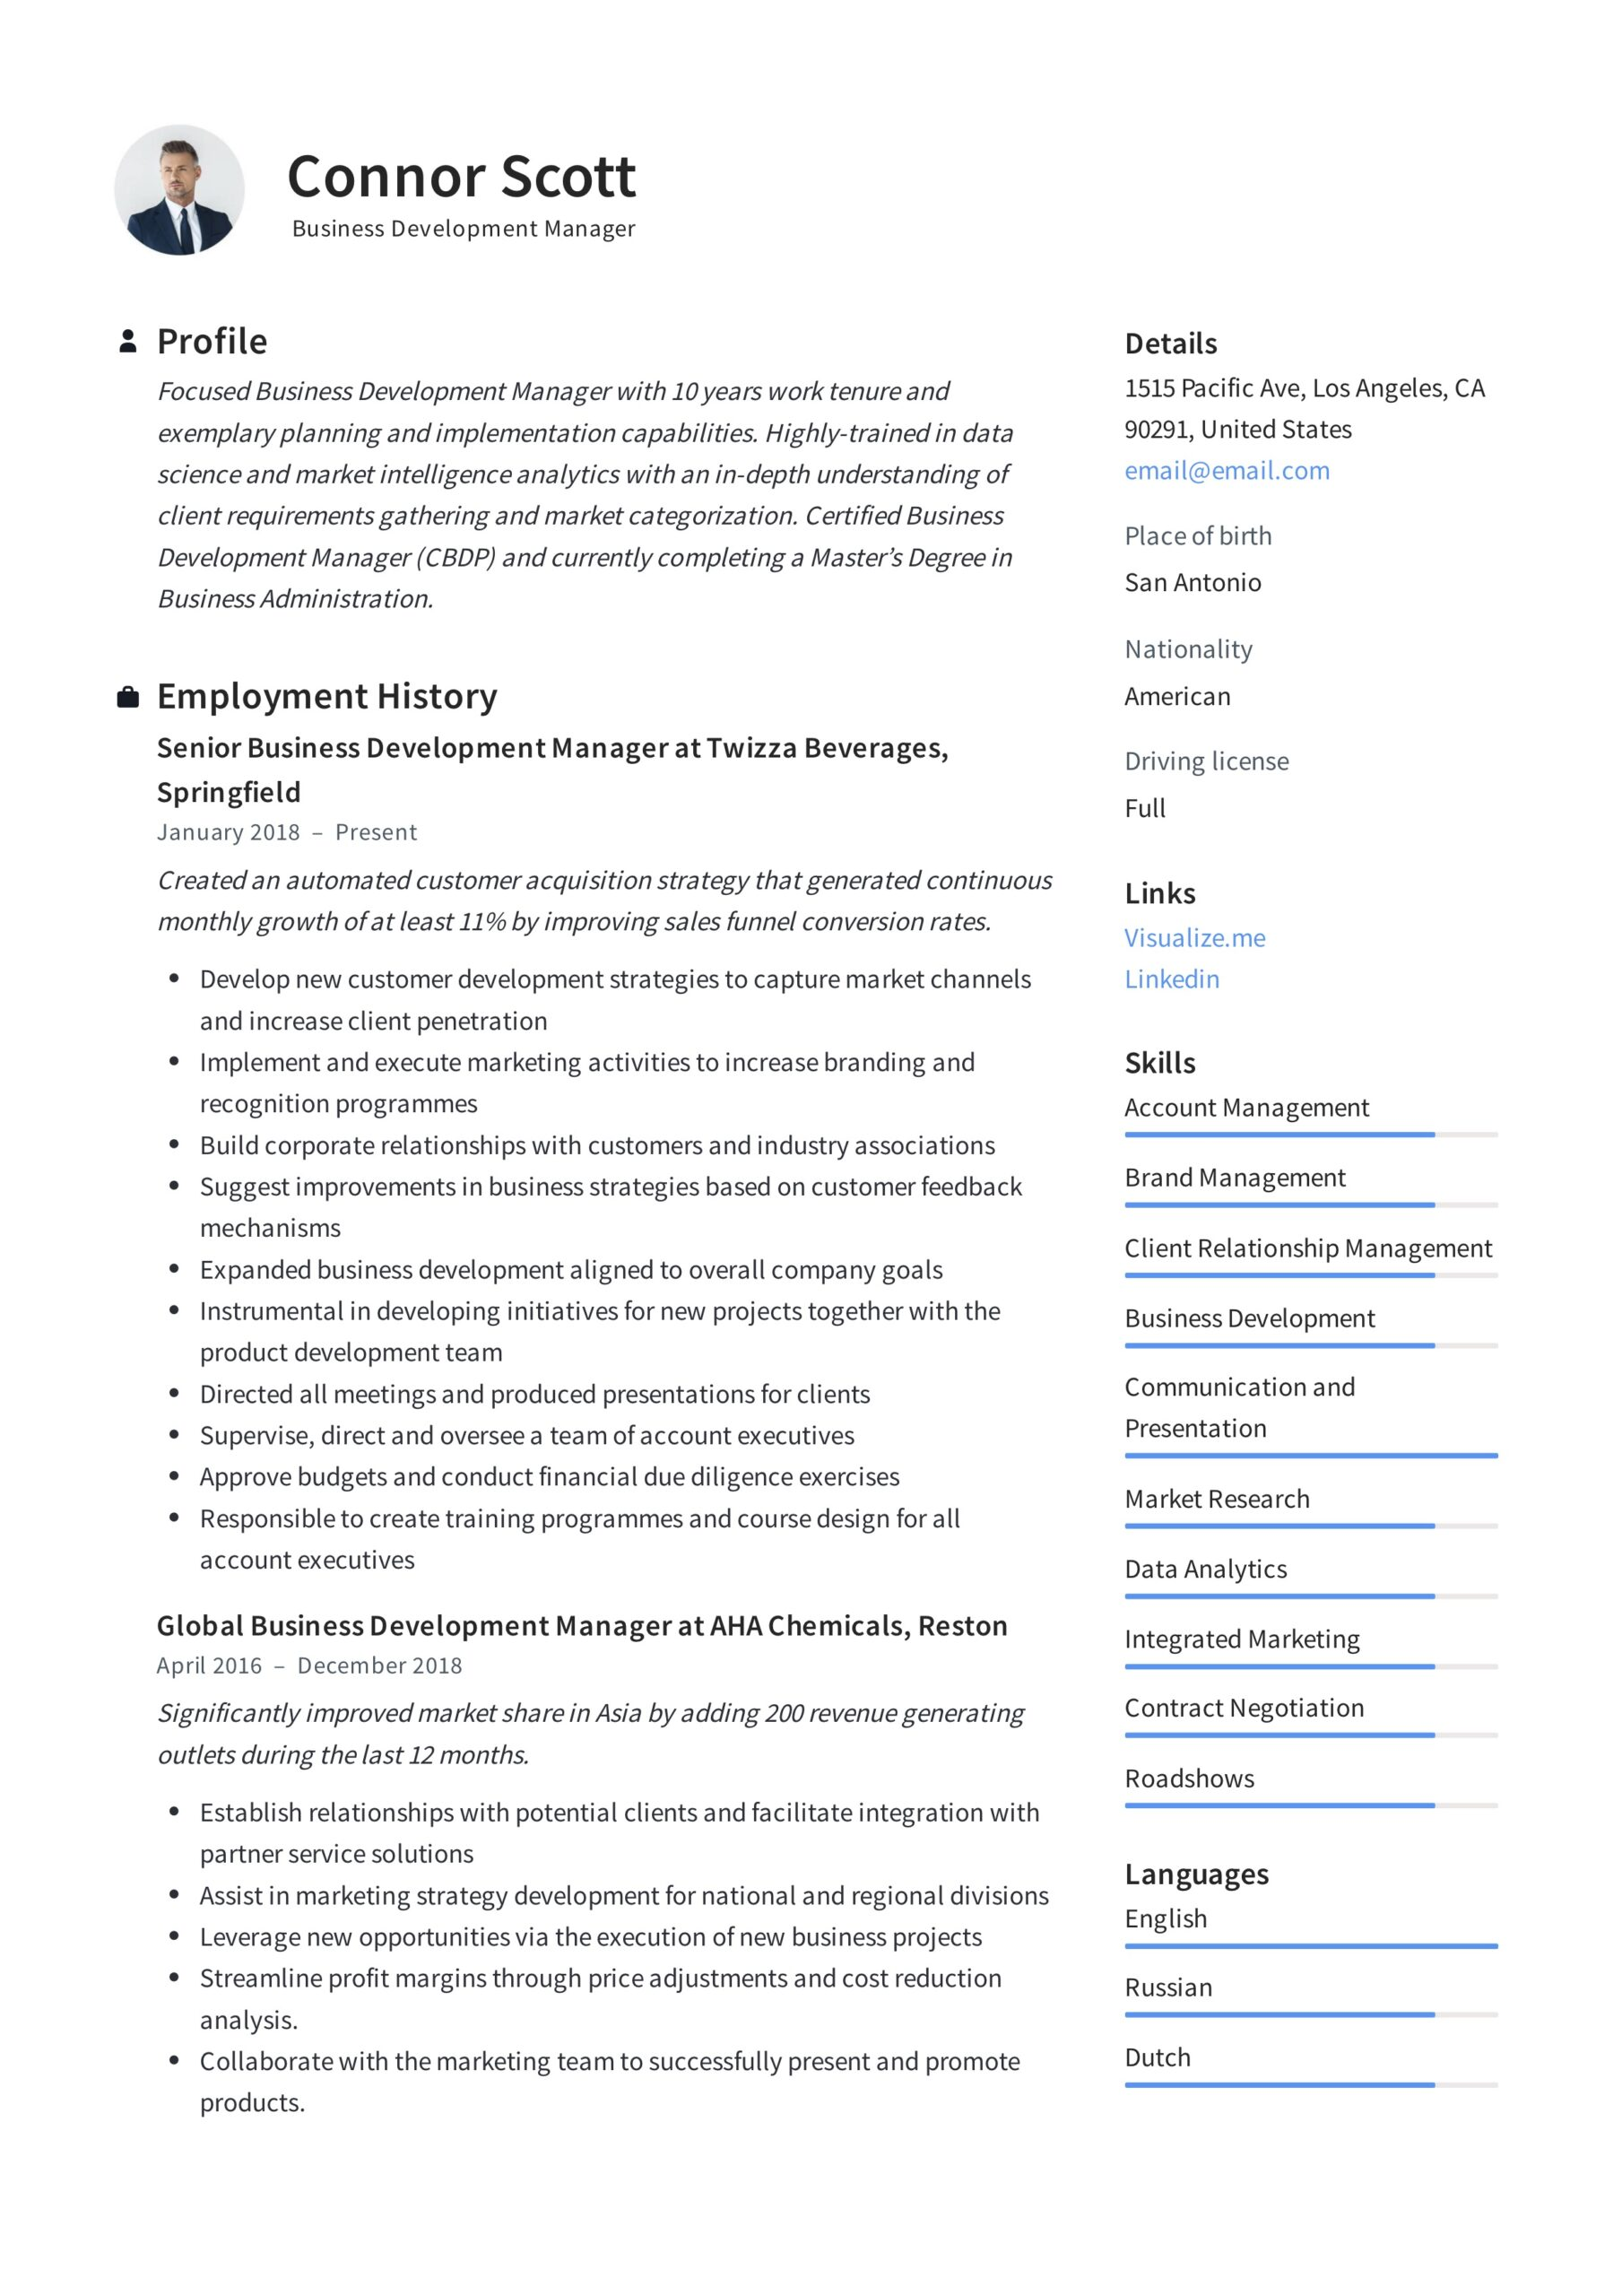 business development manager resume guide templates pdf corporate relationship sample Resume Corporate Relationship Manager Resume Sample